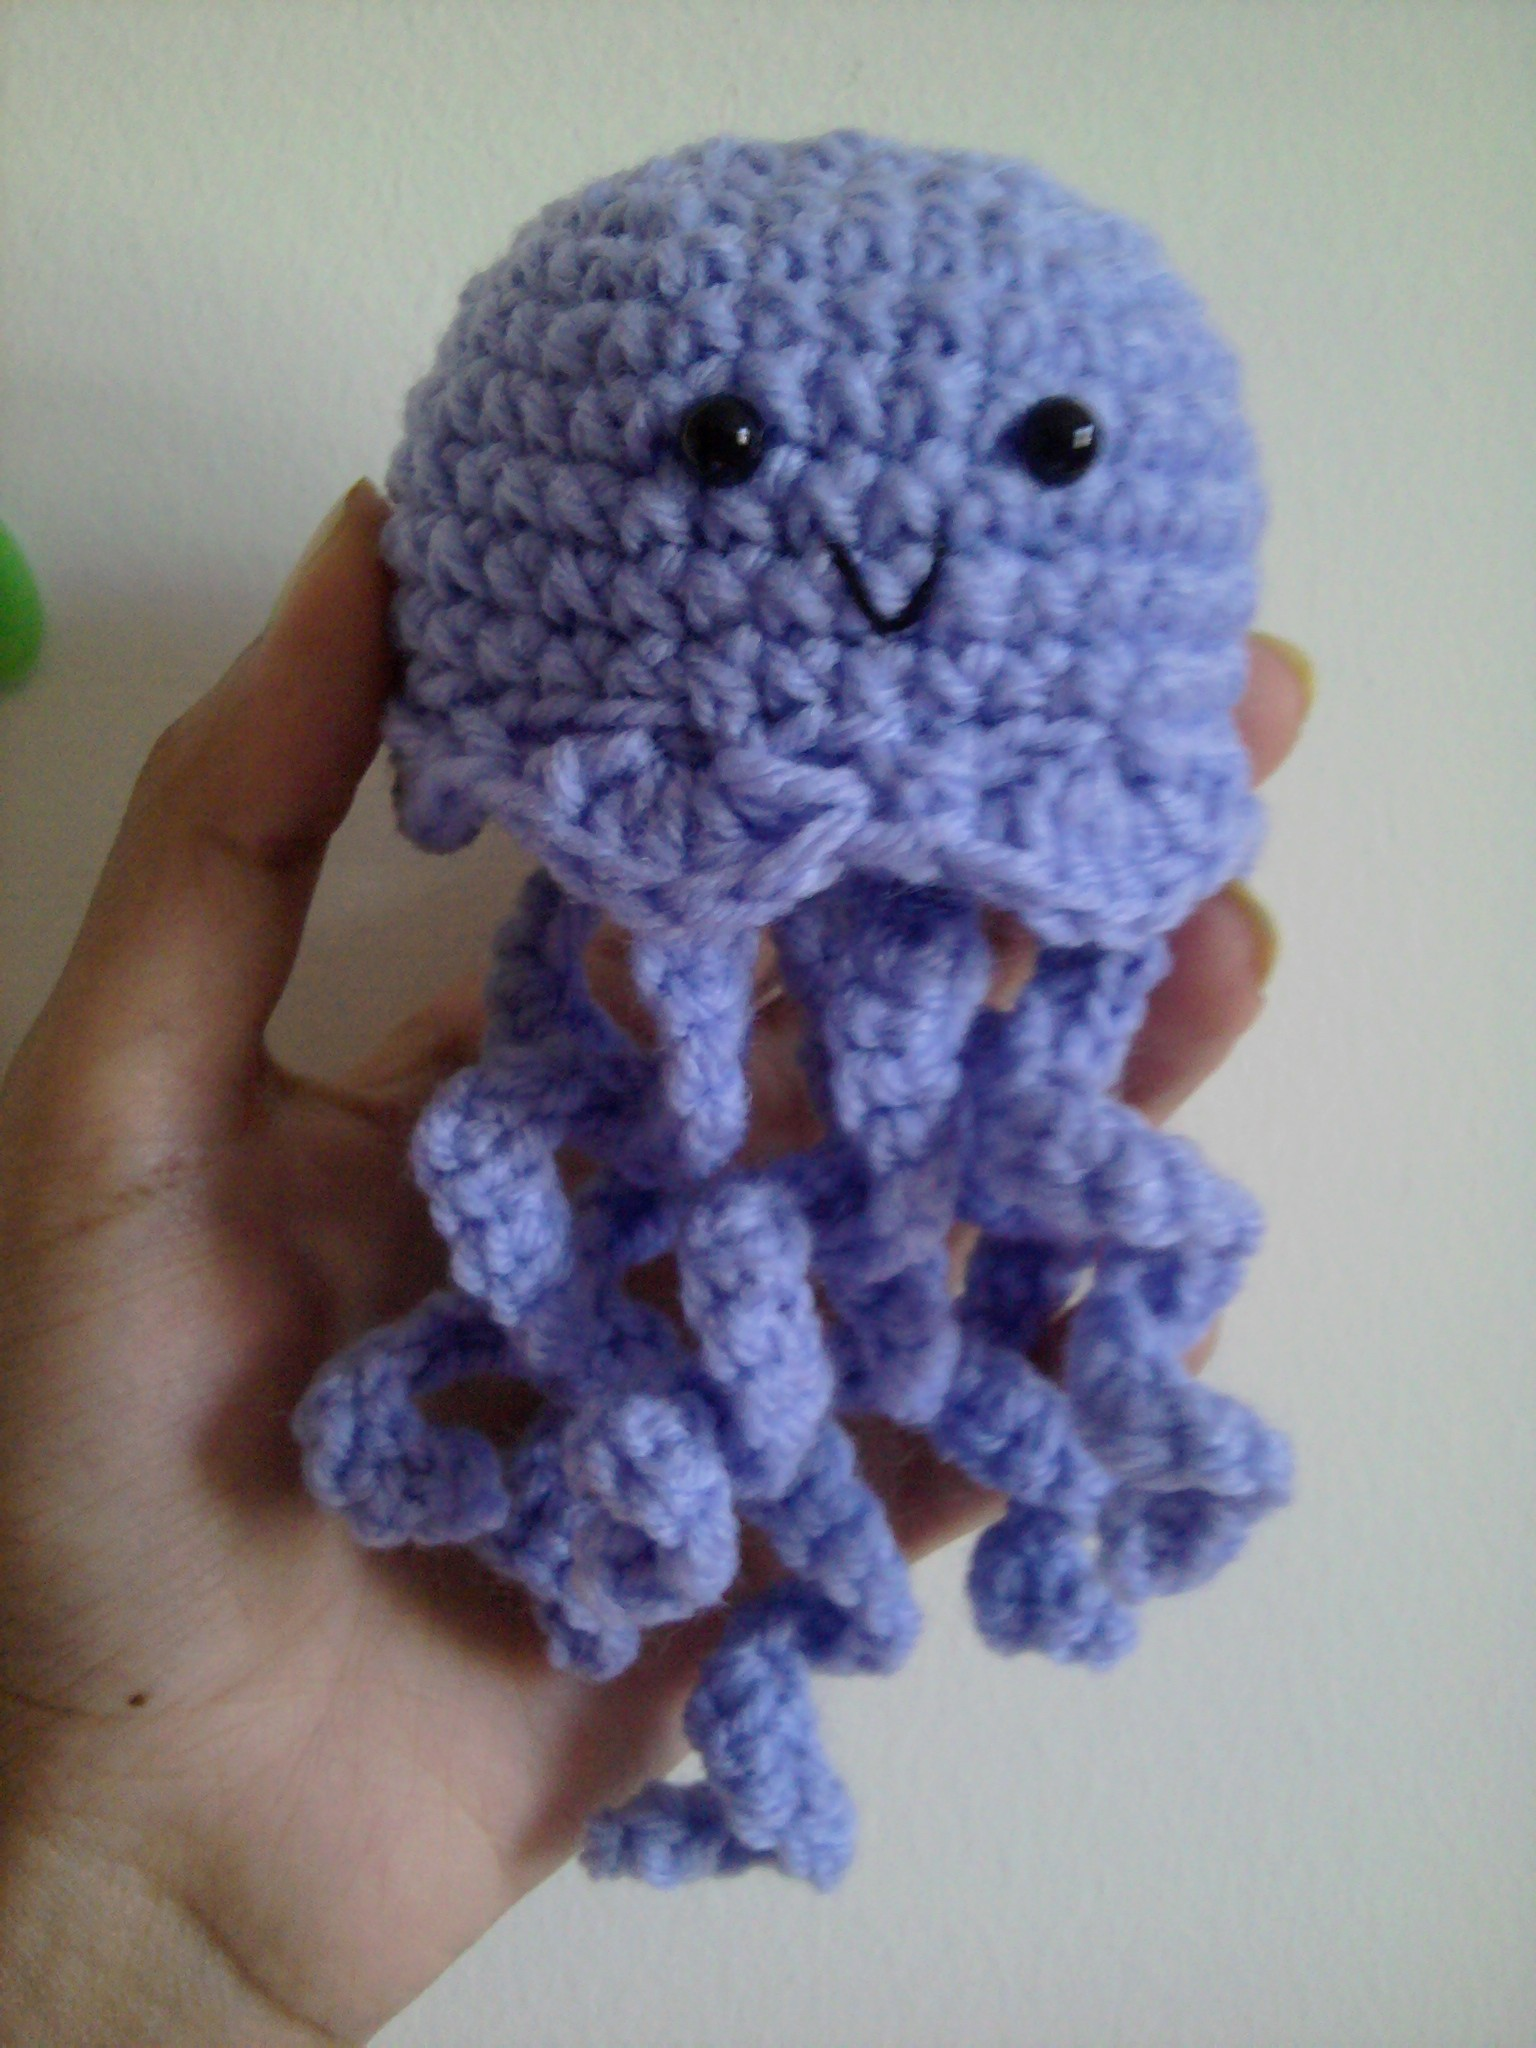 Free Crochet Pattern For Jellyfish : My Jammin Jellyfish (and pattern!) millieonherworld